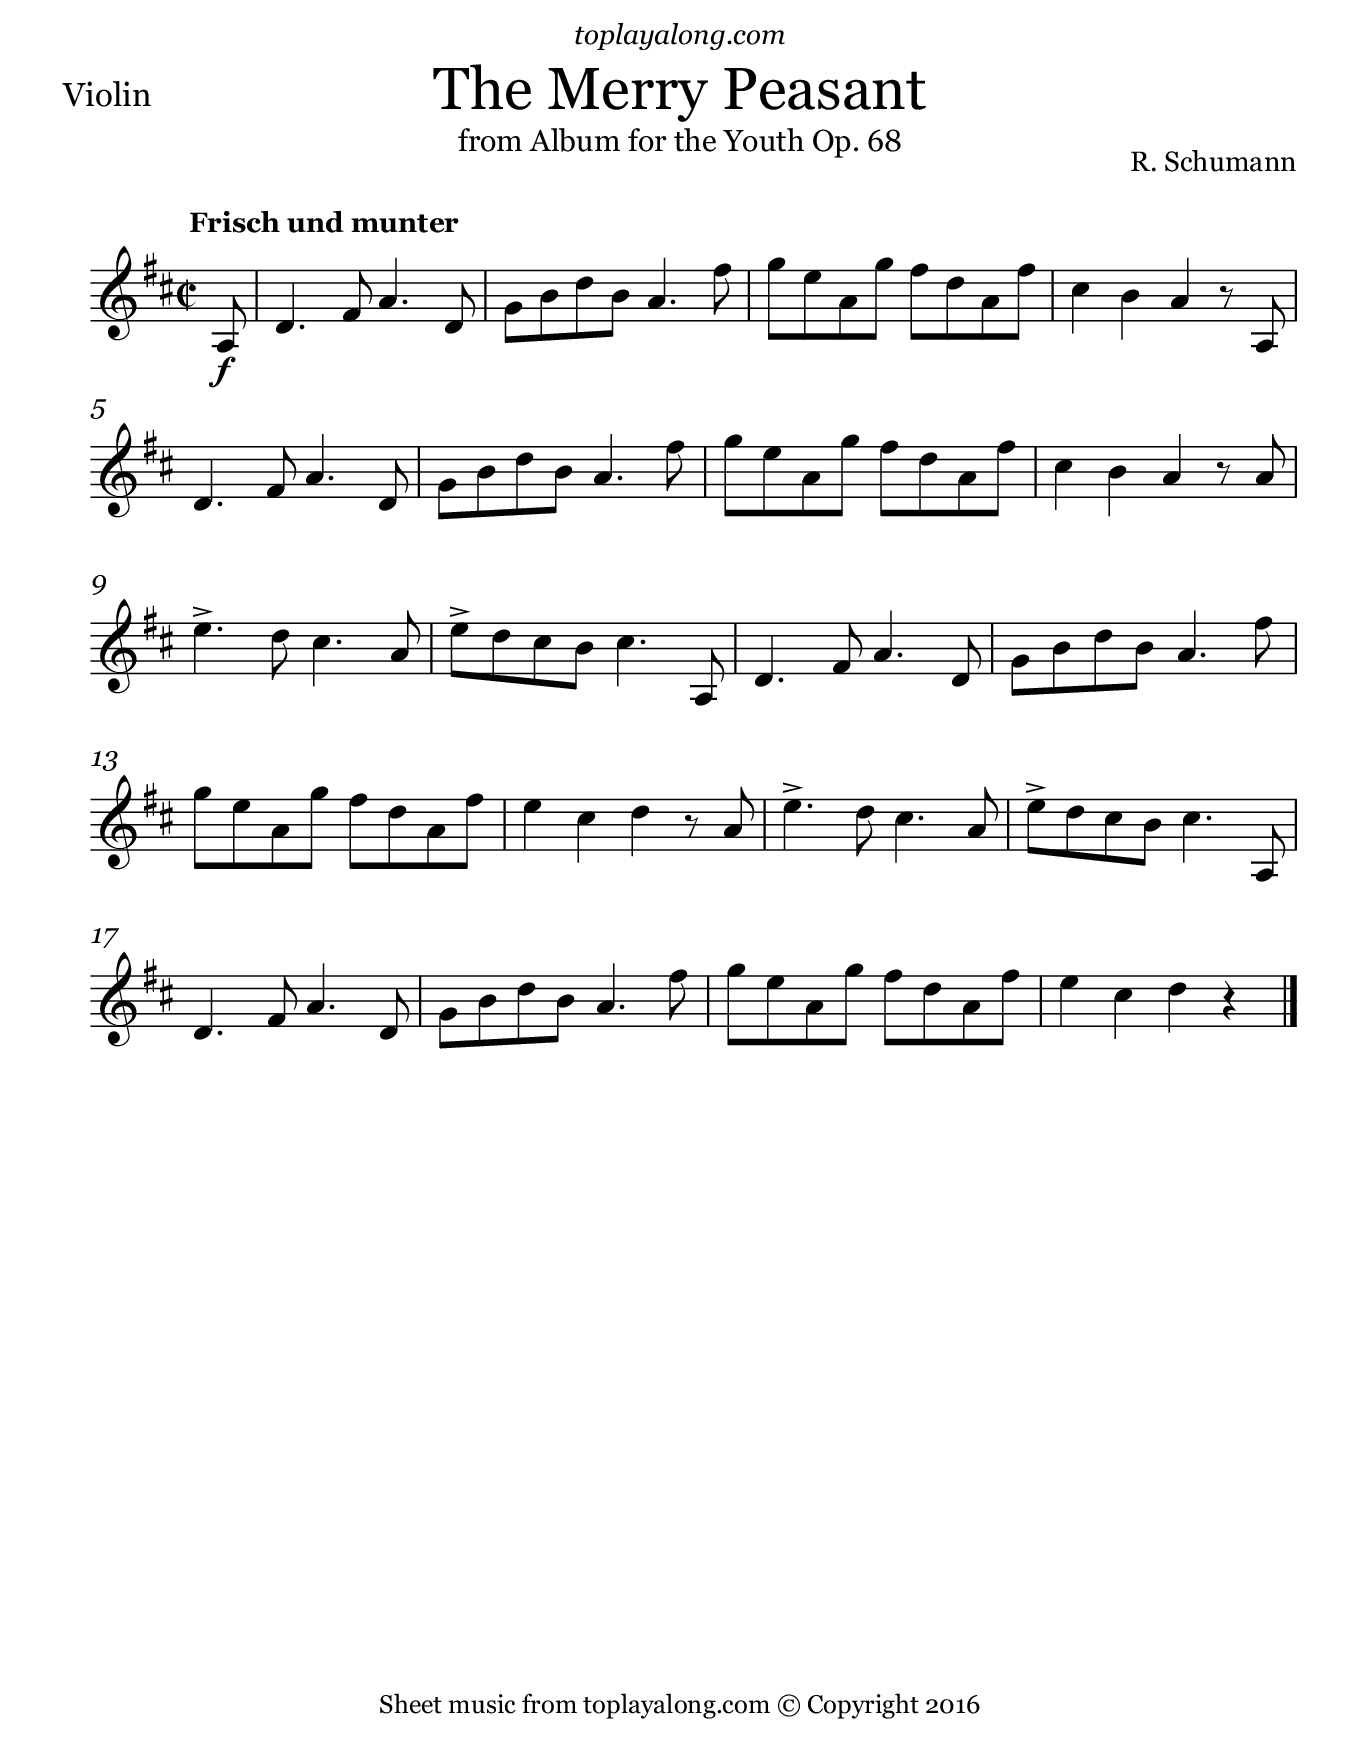 The Merry Peasant by Schumann. Sheet music for Violin, page 1.